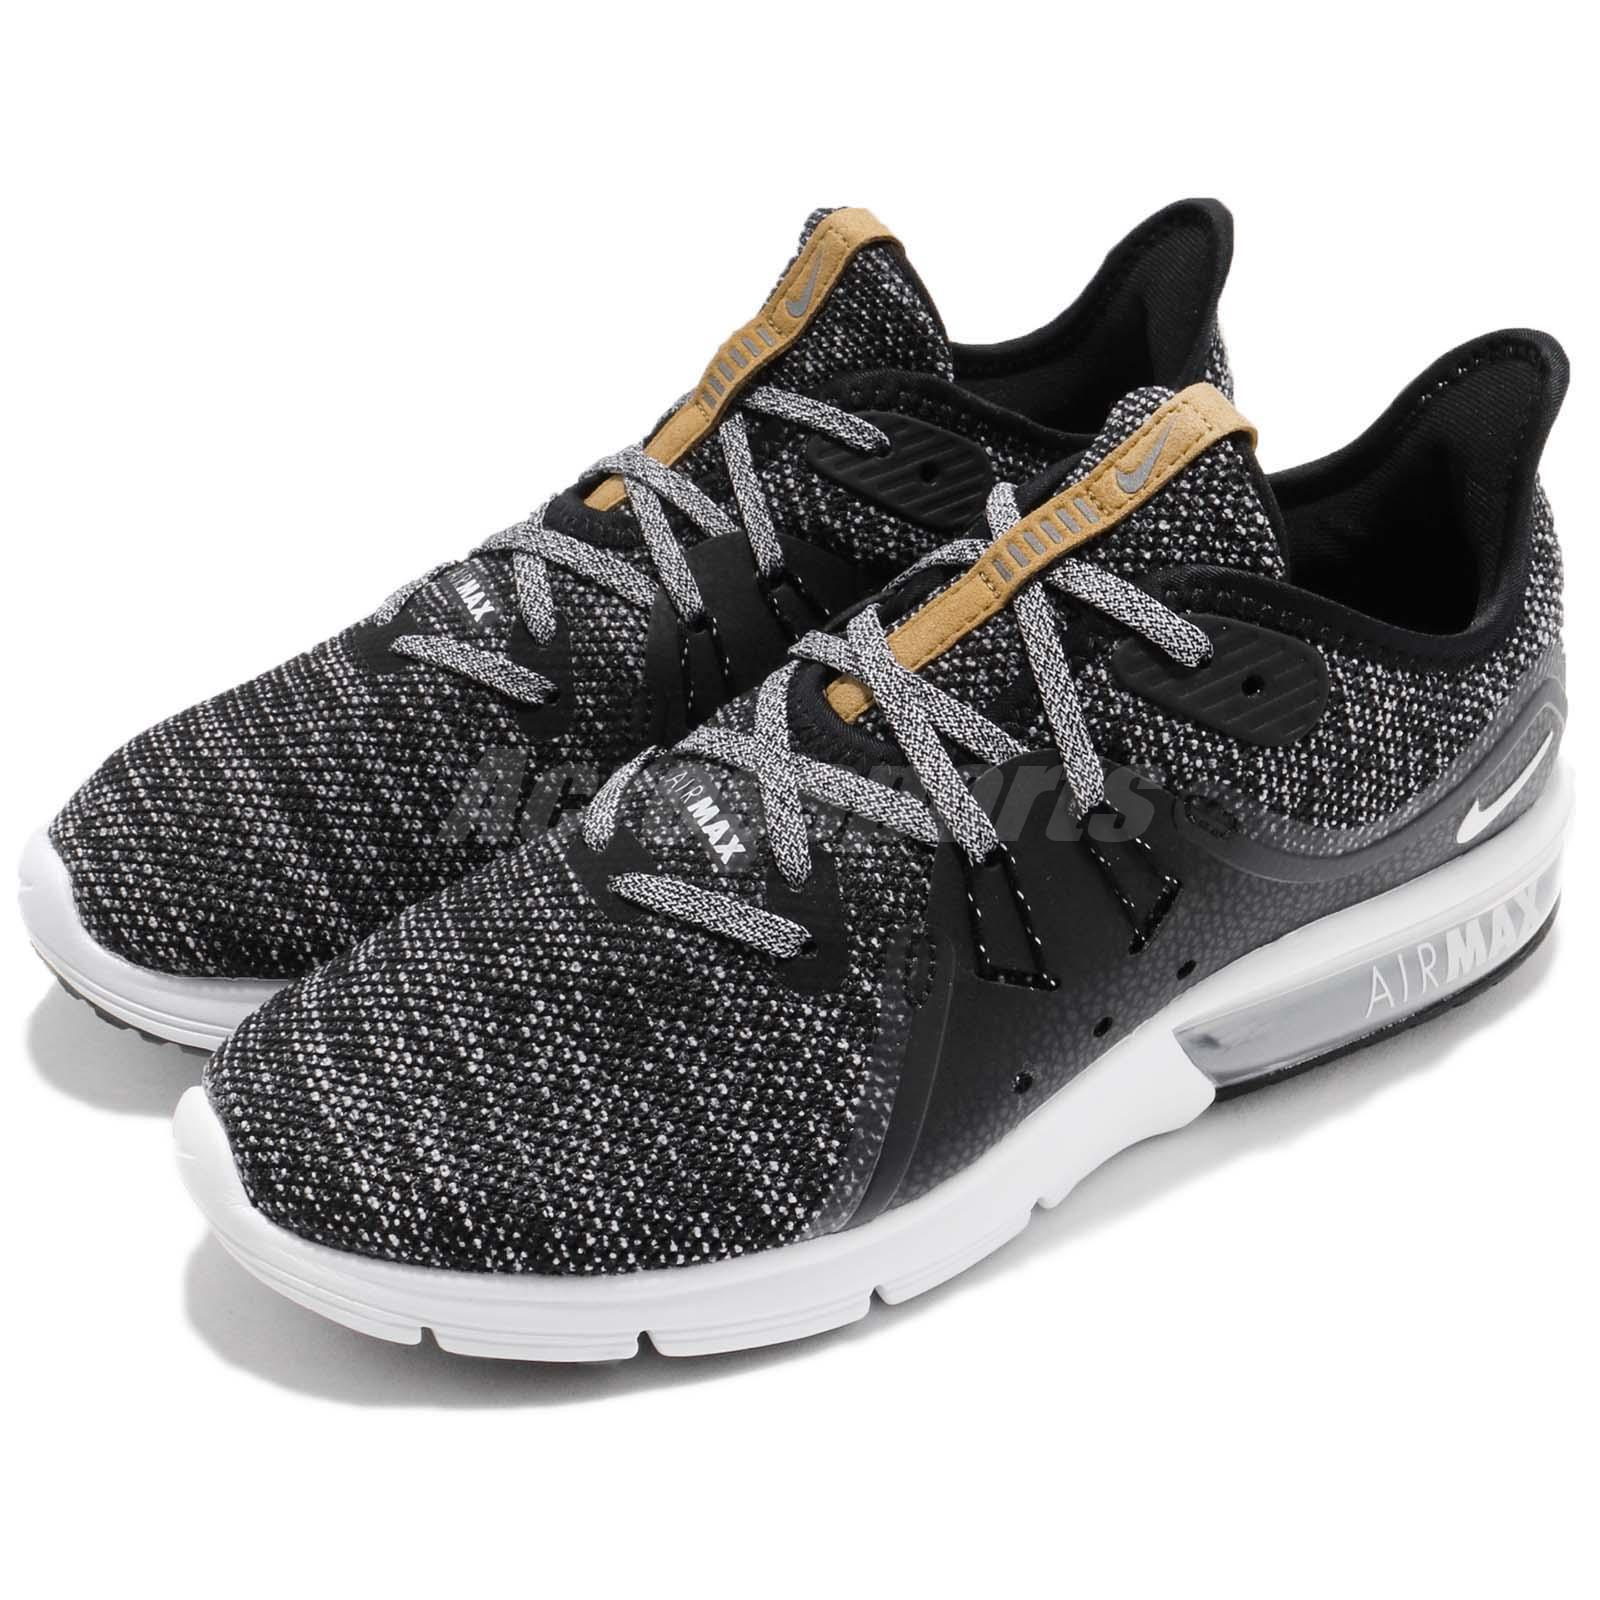 5cb1a957a59 Details about Wmns Nike Air Max Sequent 3 III Black Grey Women Running Shoe  Sneaker 908993-011